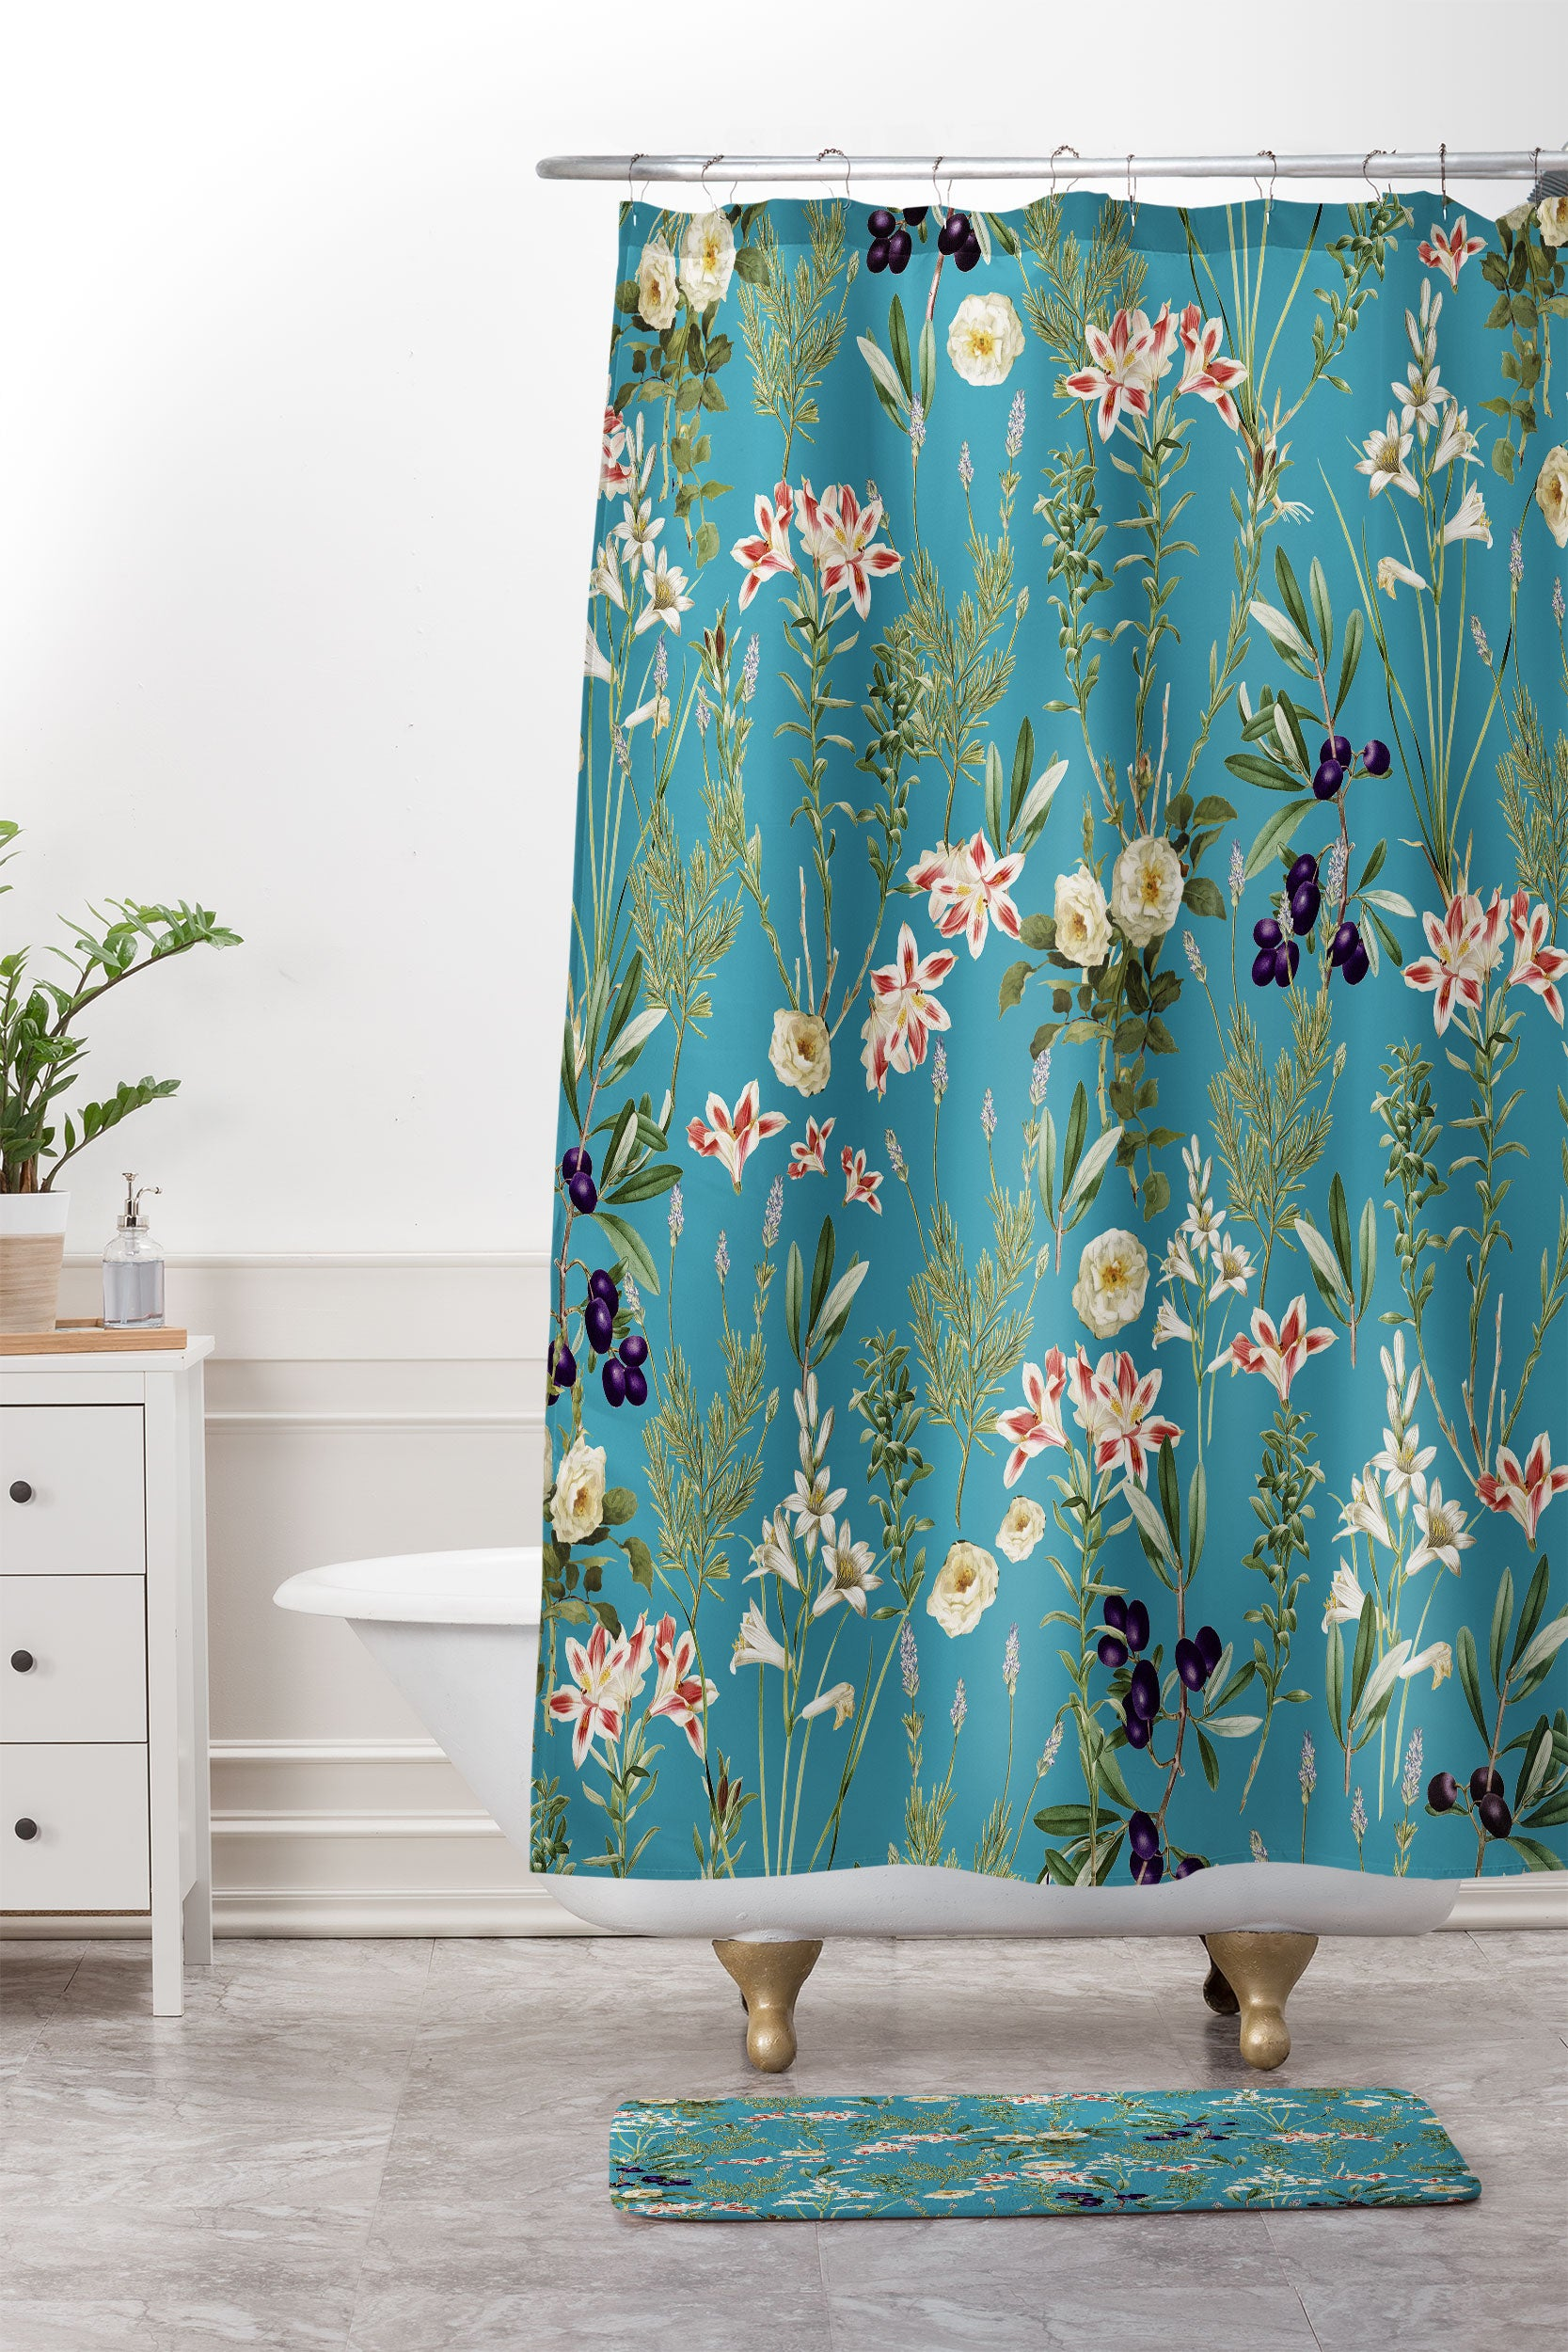 83 Oranges Teal Botanical Garden Shower Curtain And Mat